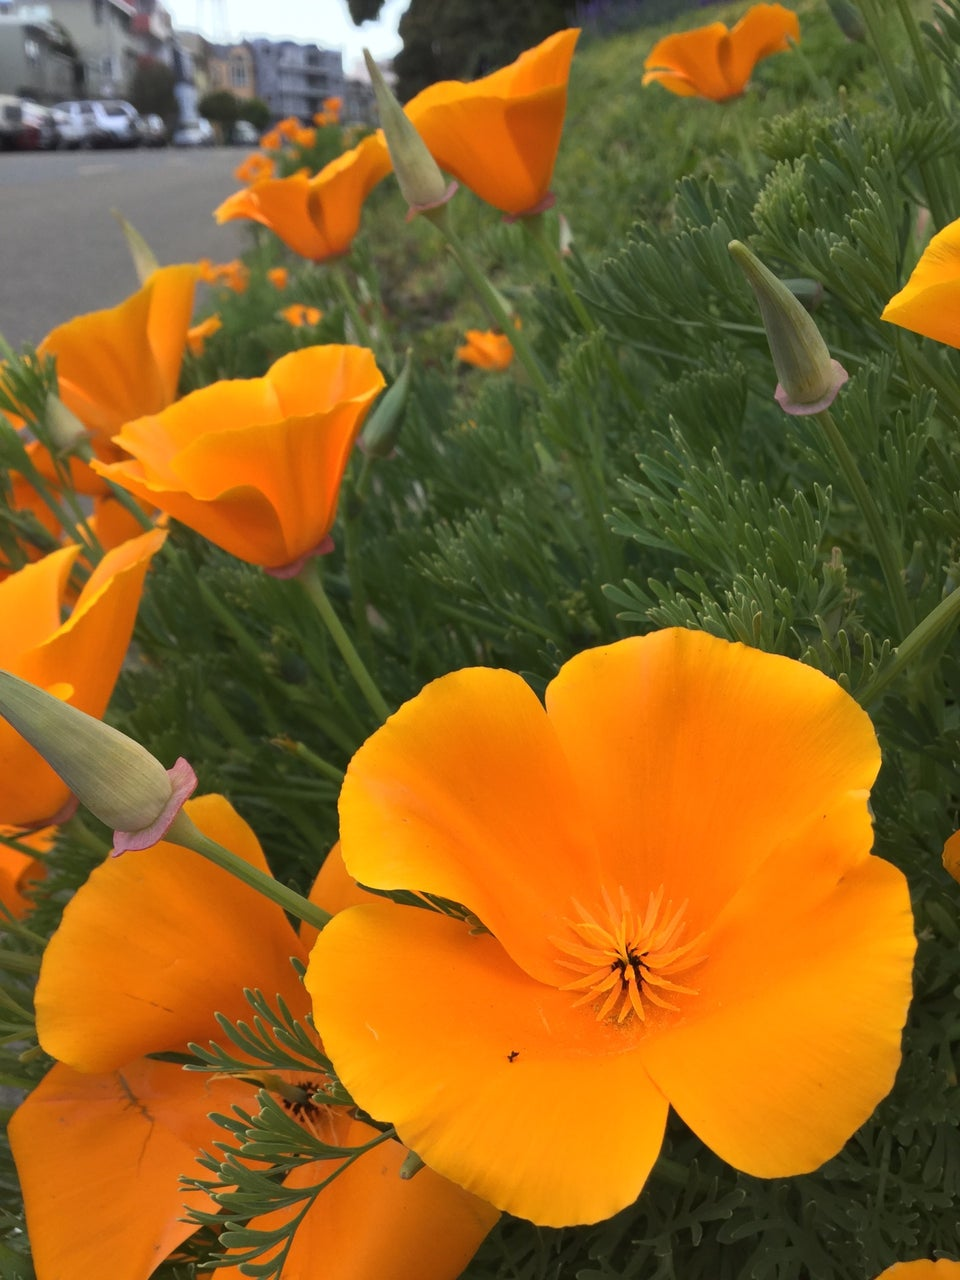 California golden poppies in full bloom on the side of a hill and receding into the distance, next to a street with cars parked on the other side of it, blurry from the distance.